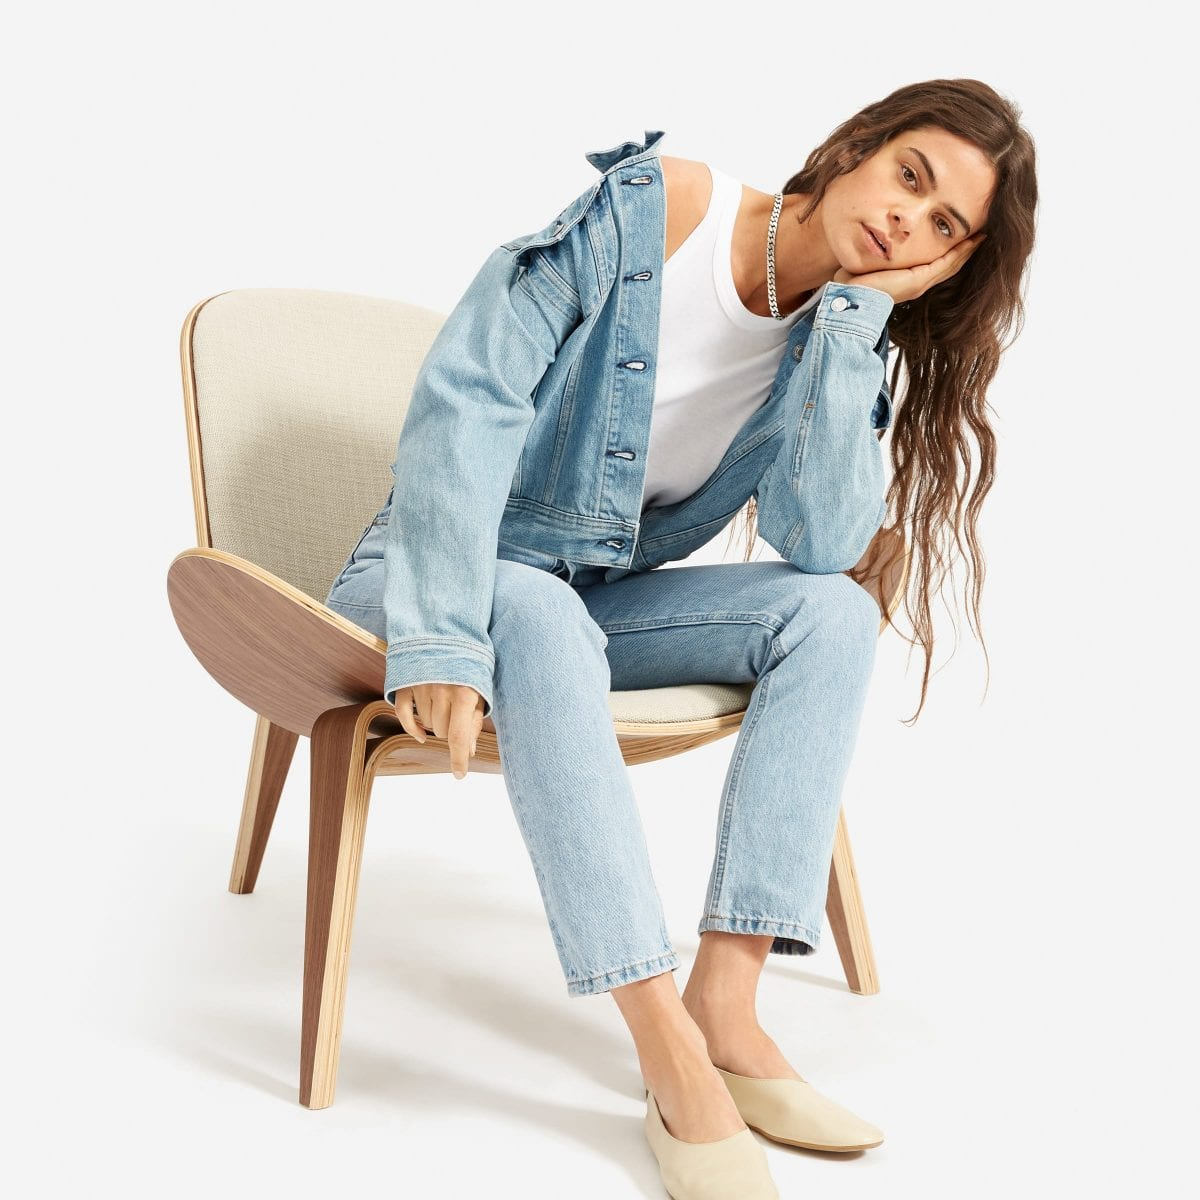 My favourite pair of jeans - the 90's Cheeky Denim from Everlane